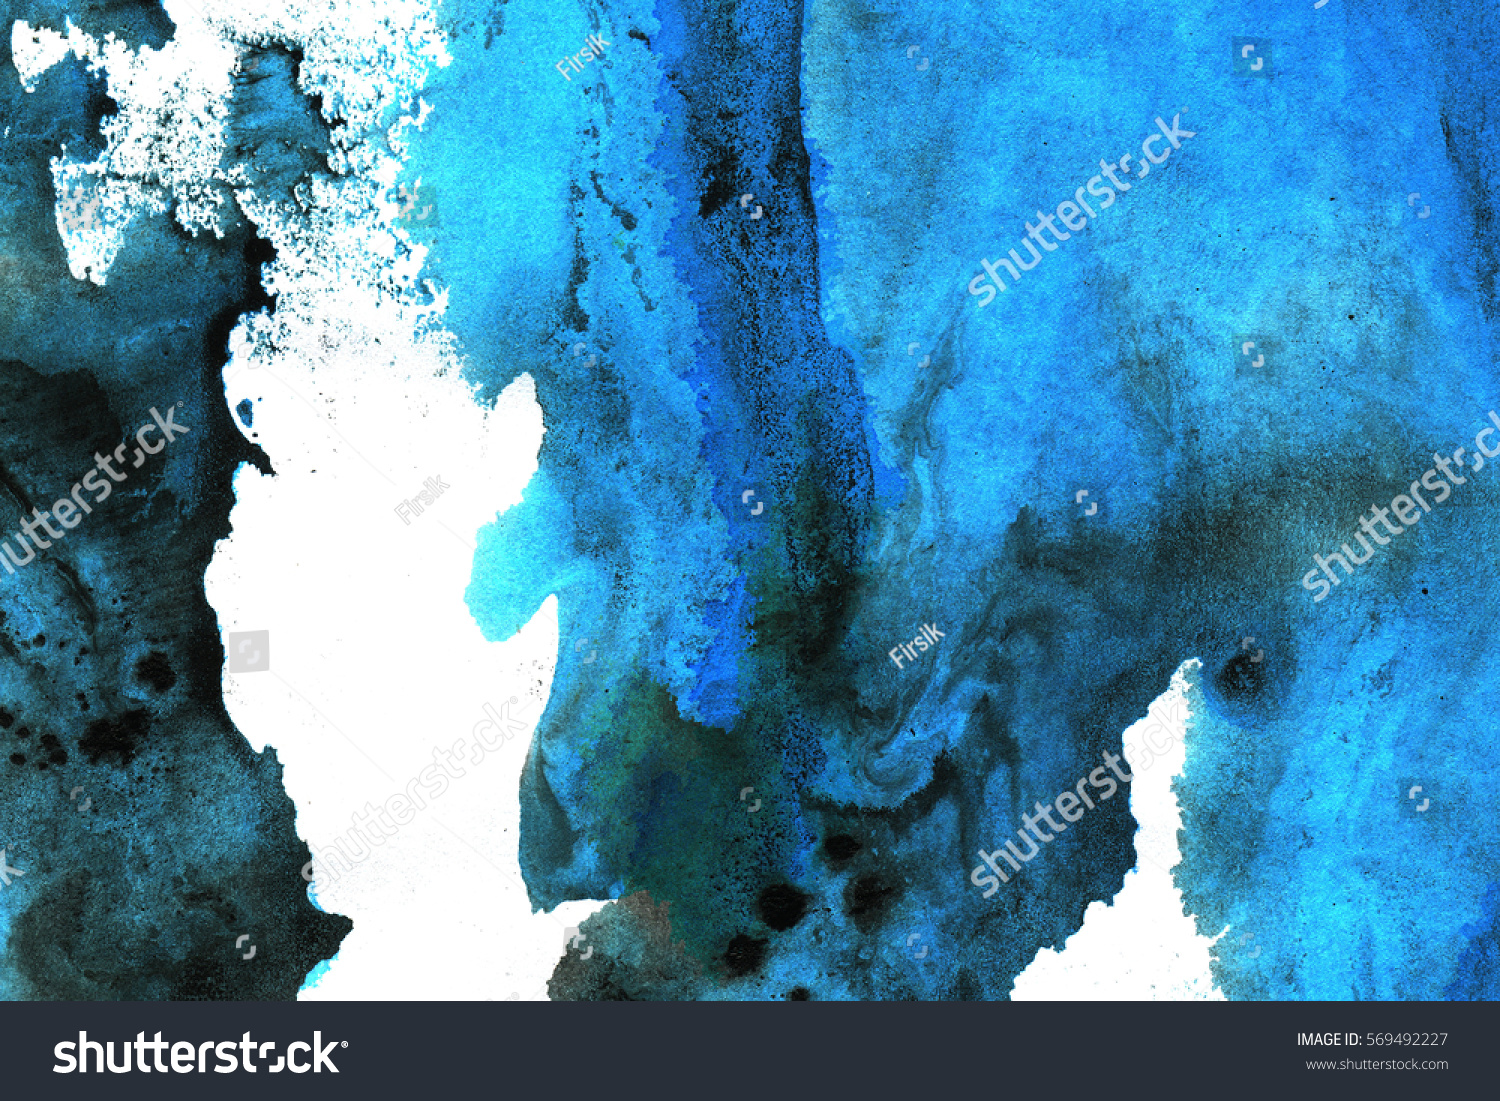 Simple Wallpaper Marble Dark Blue - stock-photo-abstract-ink-background-marble-style-black-paint-stroke-texture-on-white-paper-wallpaper-for-web-569492227  Gallery_372595.jpg